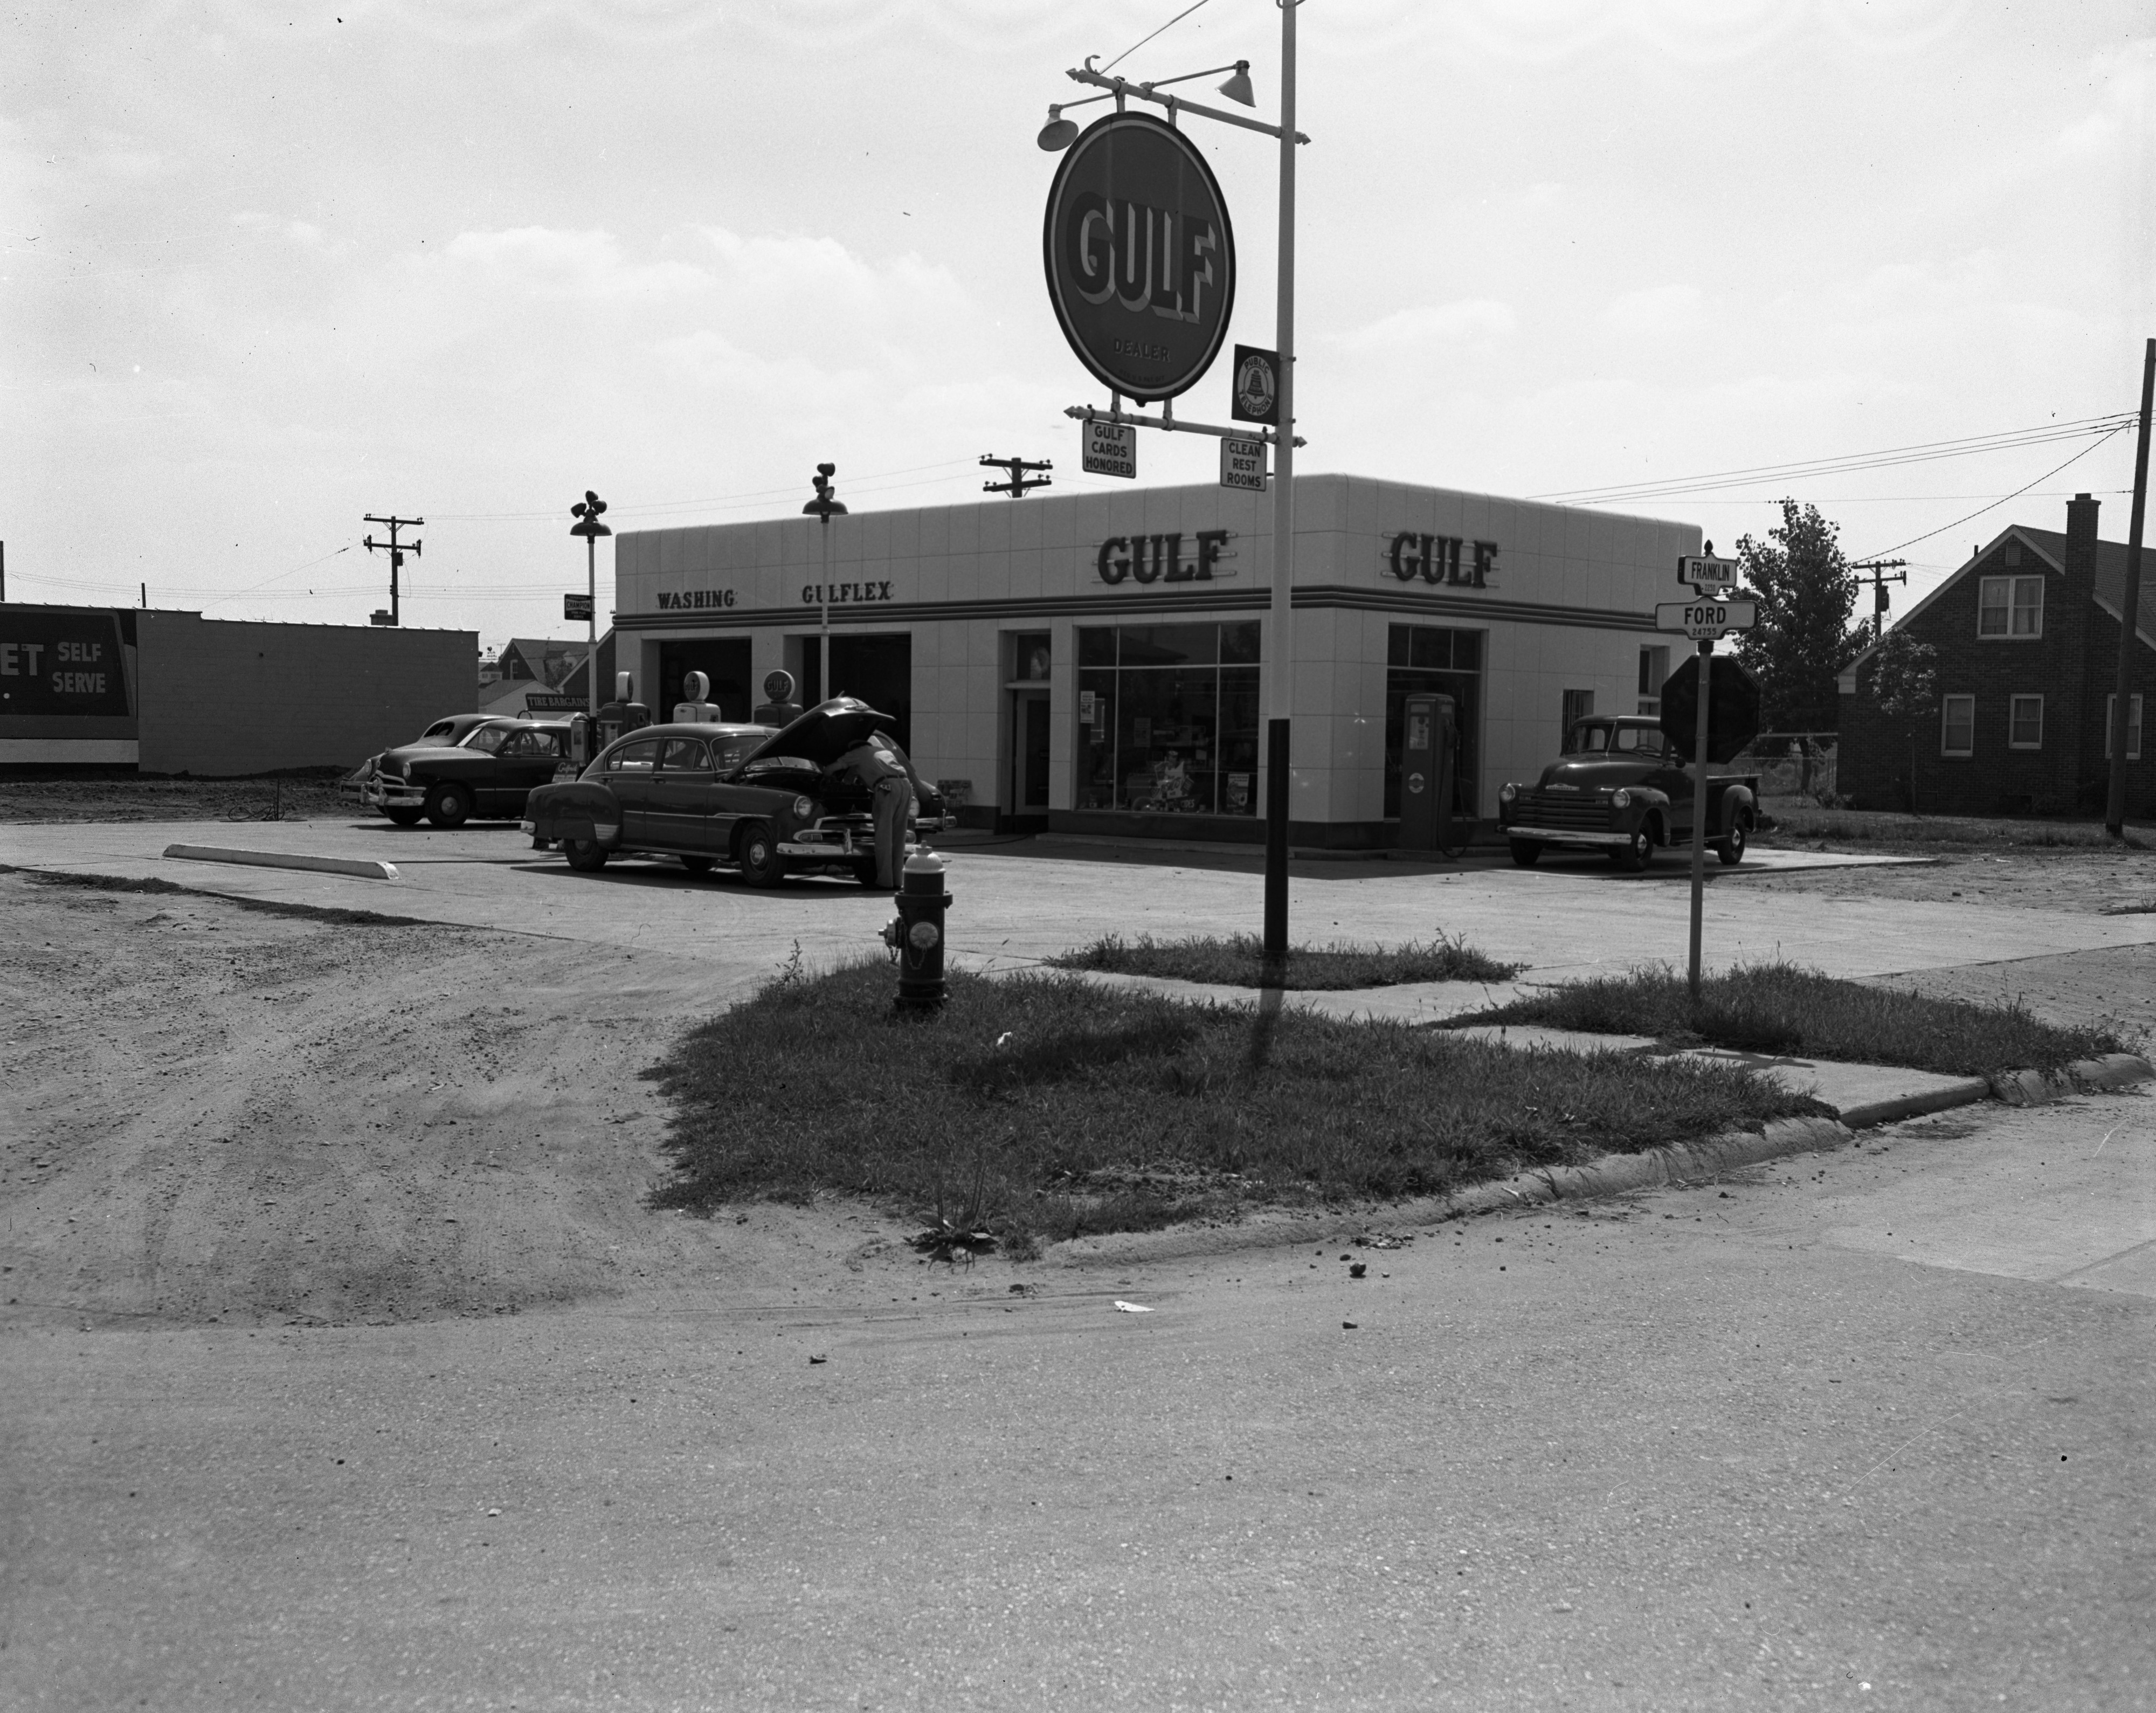 Gulf gas station, Franklin and Ford Rds., August 1951 image